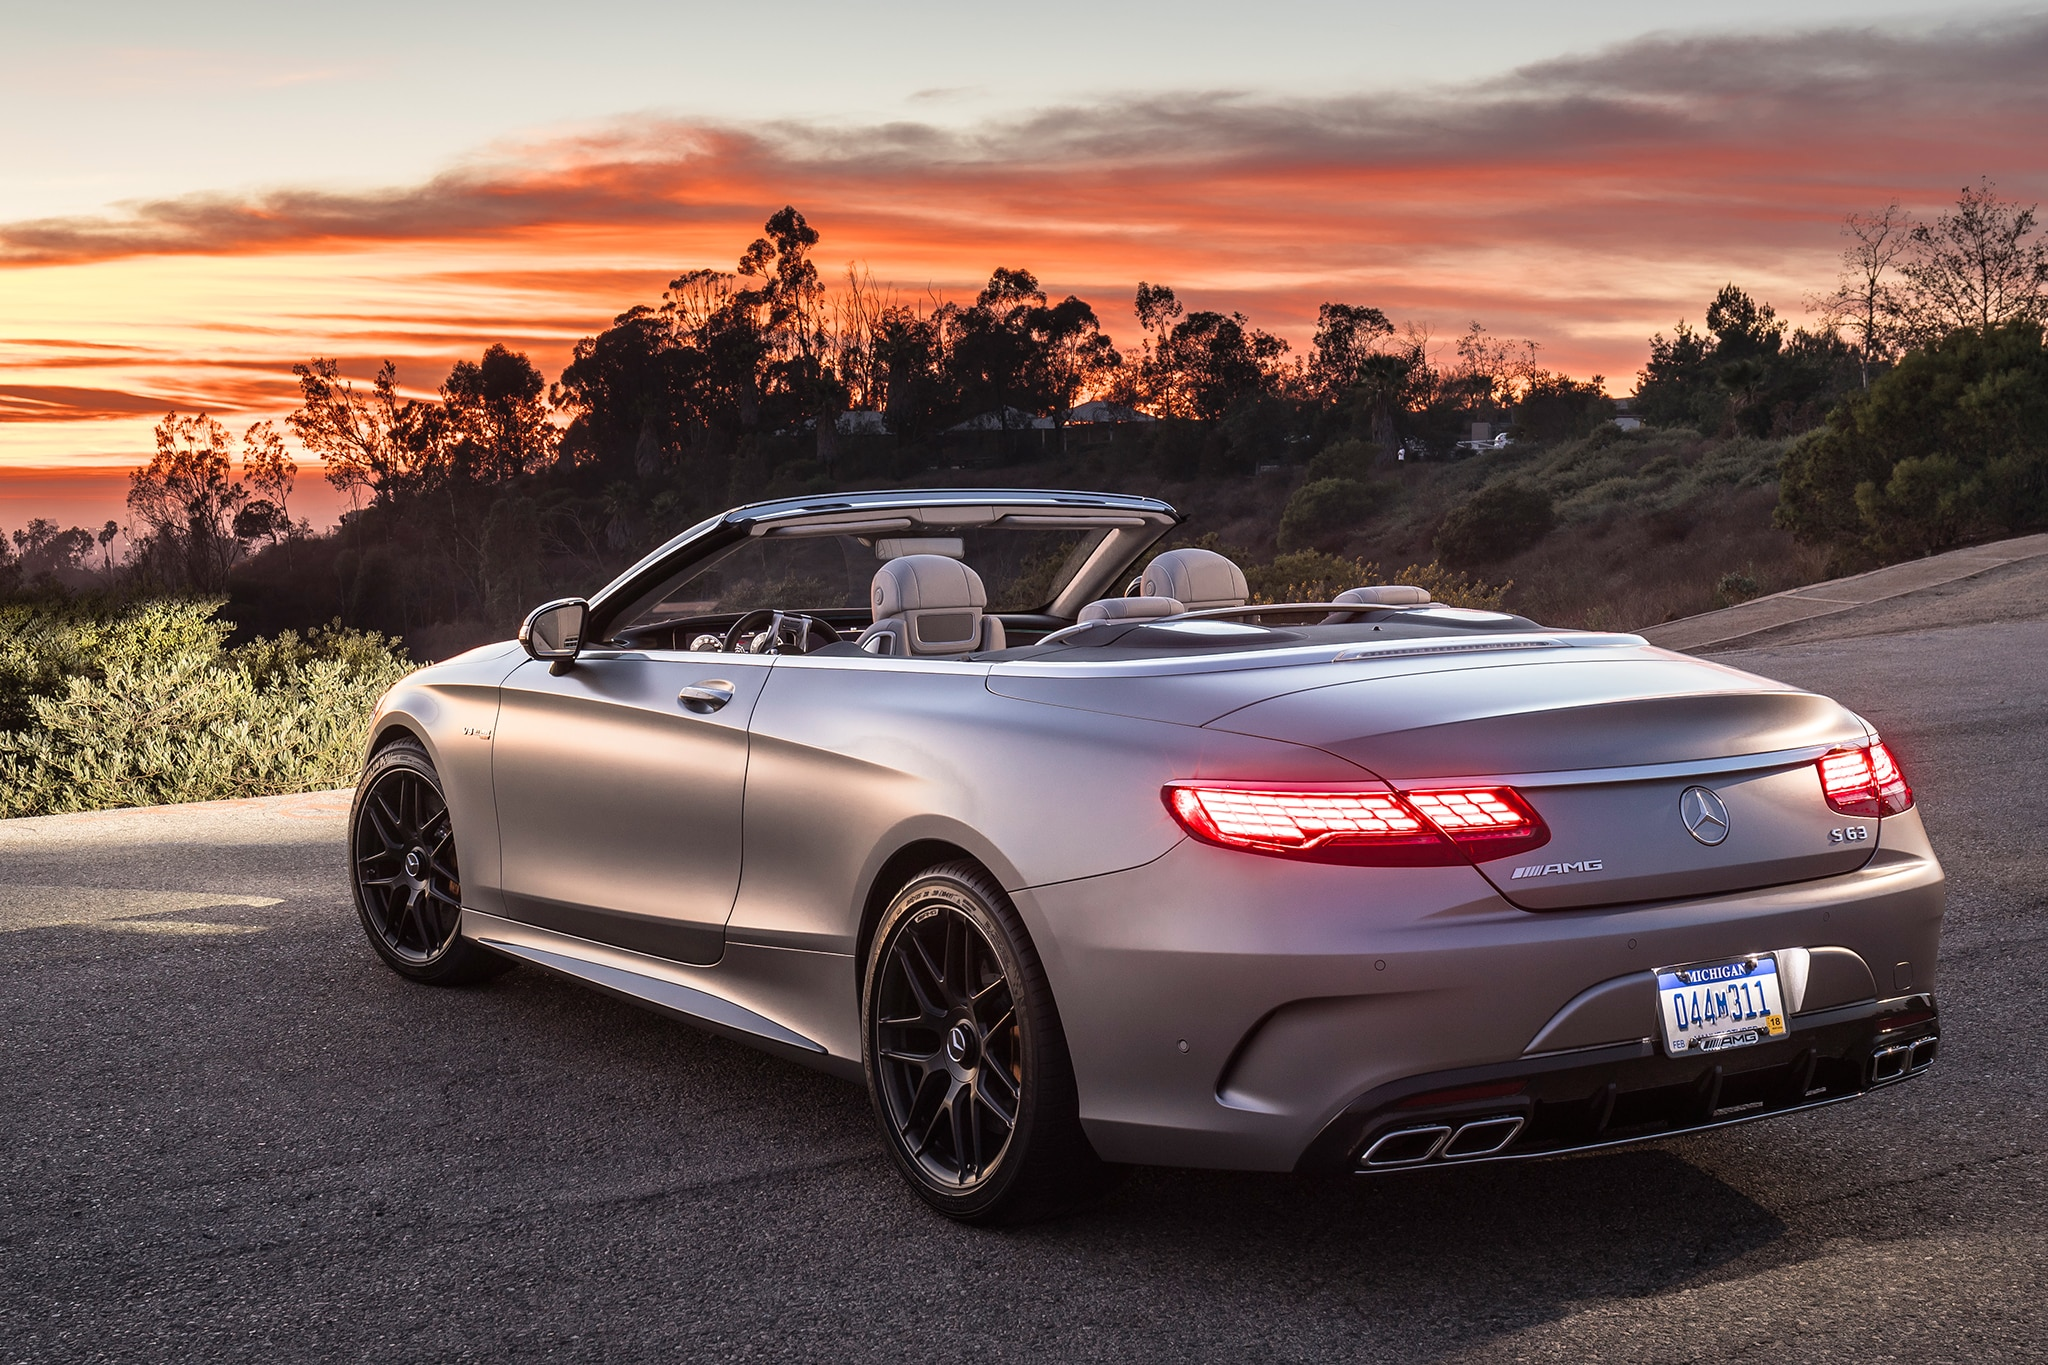 http://st.automobilemag.com/uploads/sites/11/2018/01/2018-Mercedes-AMG-S63-Cabriolet-rear-three-quarter-07.jpg